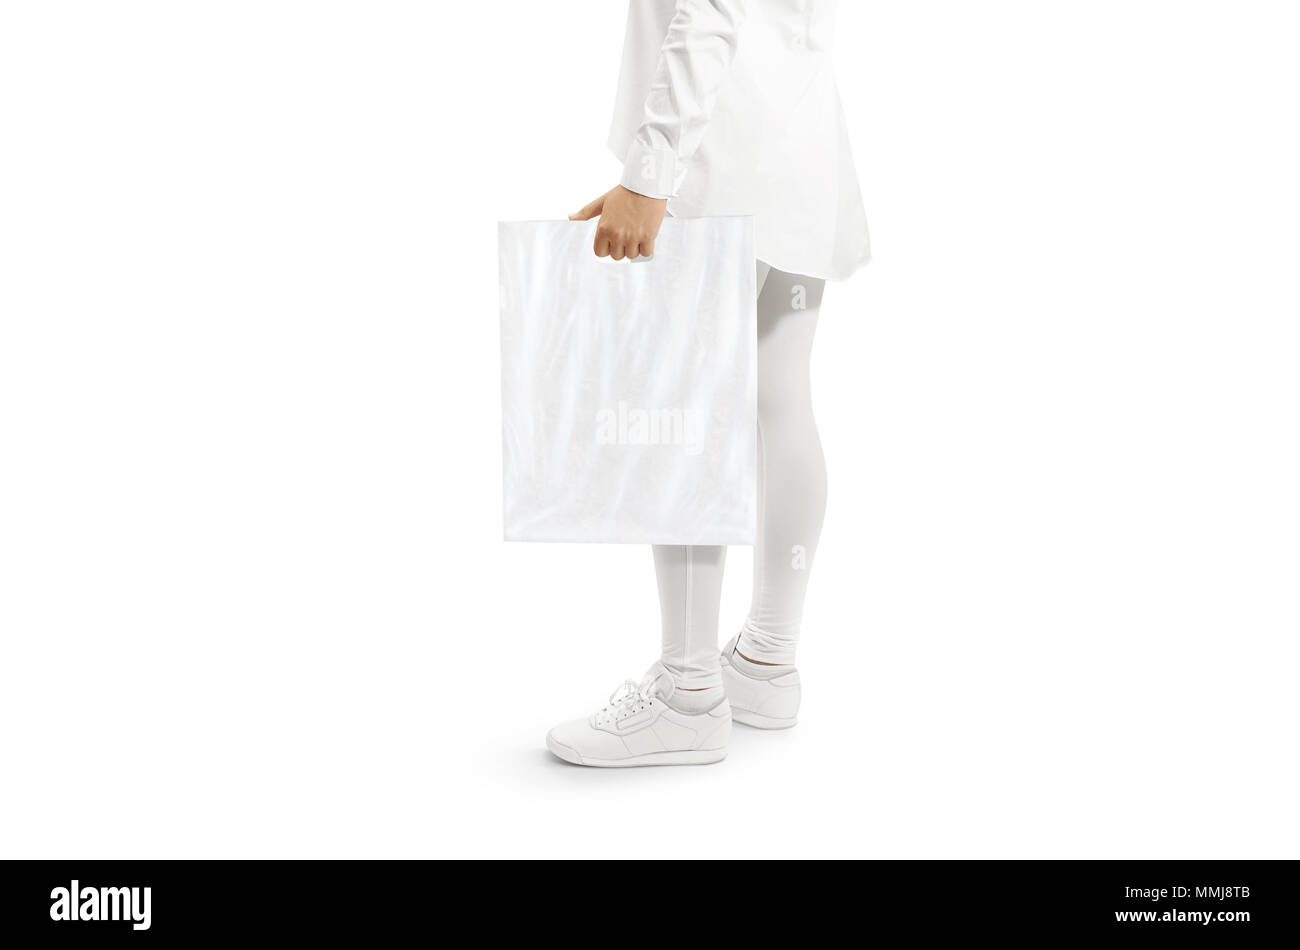 d1c8137d Blank white plastic bag mockup holding hand. Woman hold clear carrier sac mock  up.